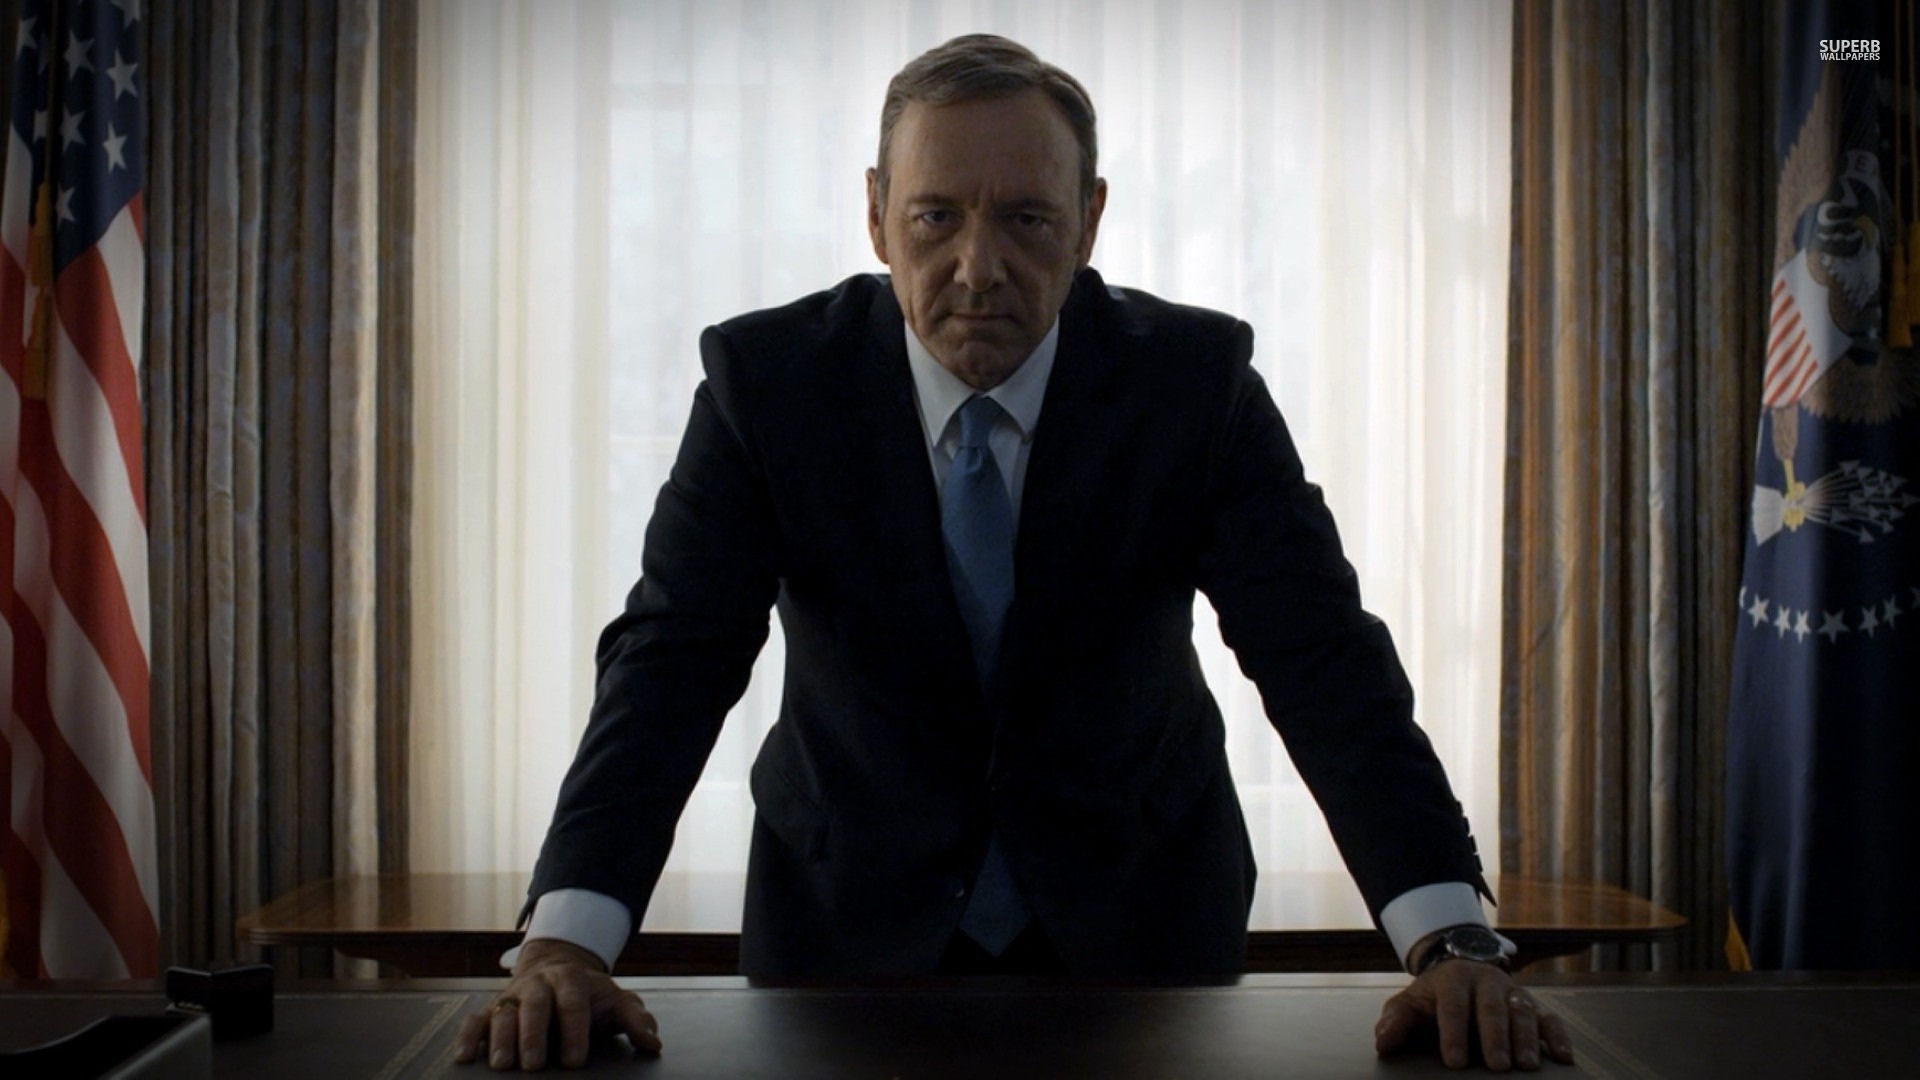 House Of Cards Pics - House Of Cards Frank Underwood , HD Wallpaper & Backgrounds